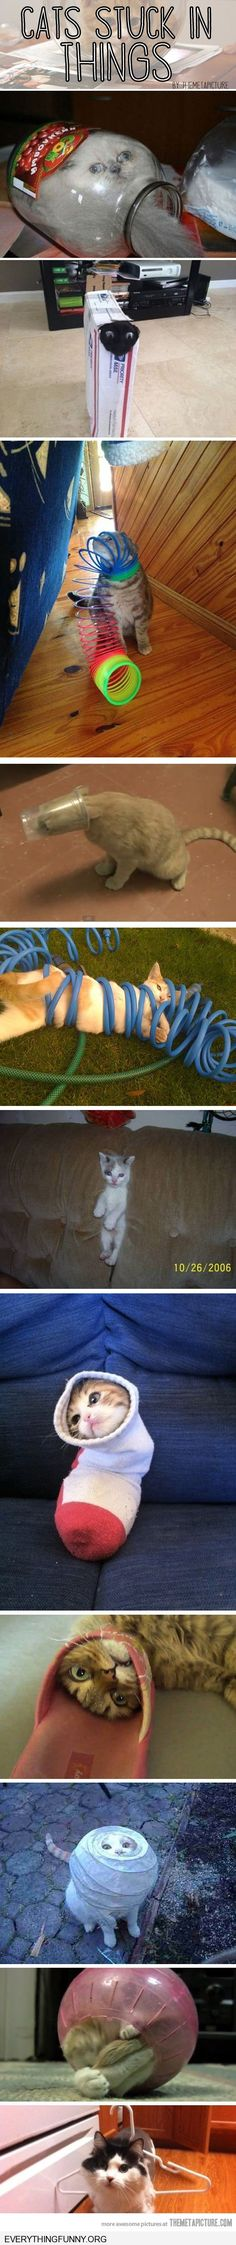 funny cats stuck in things